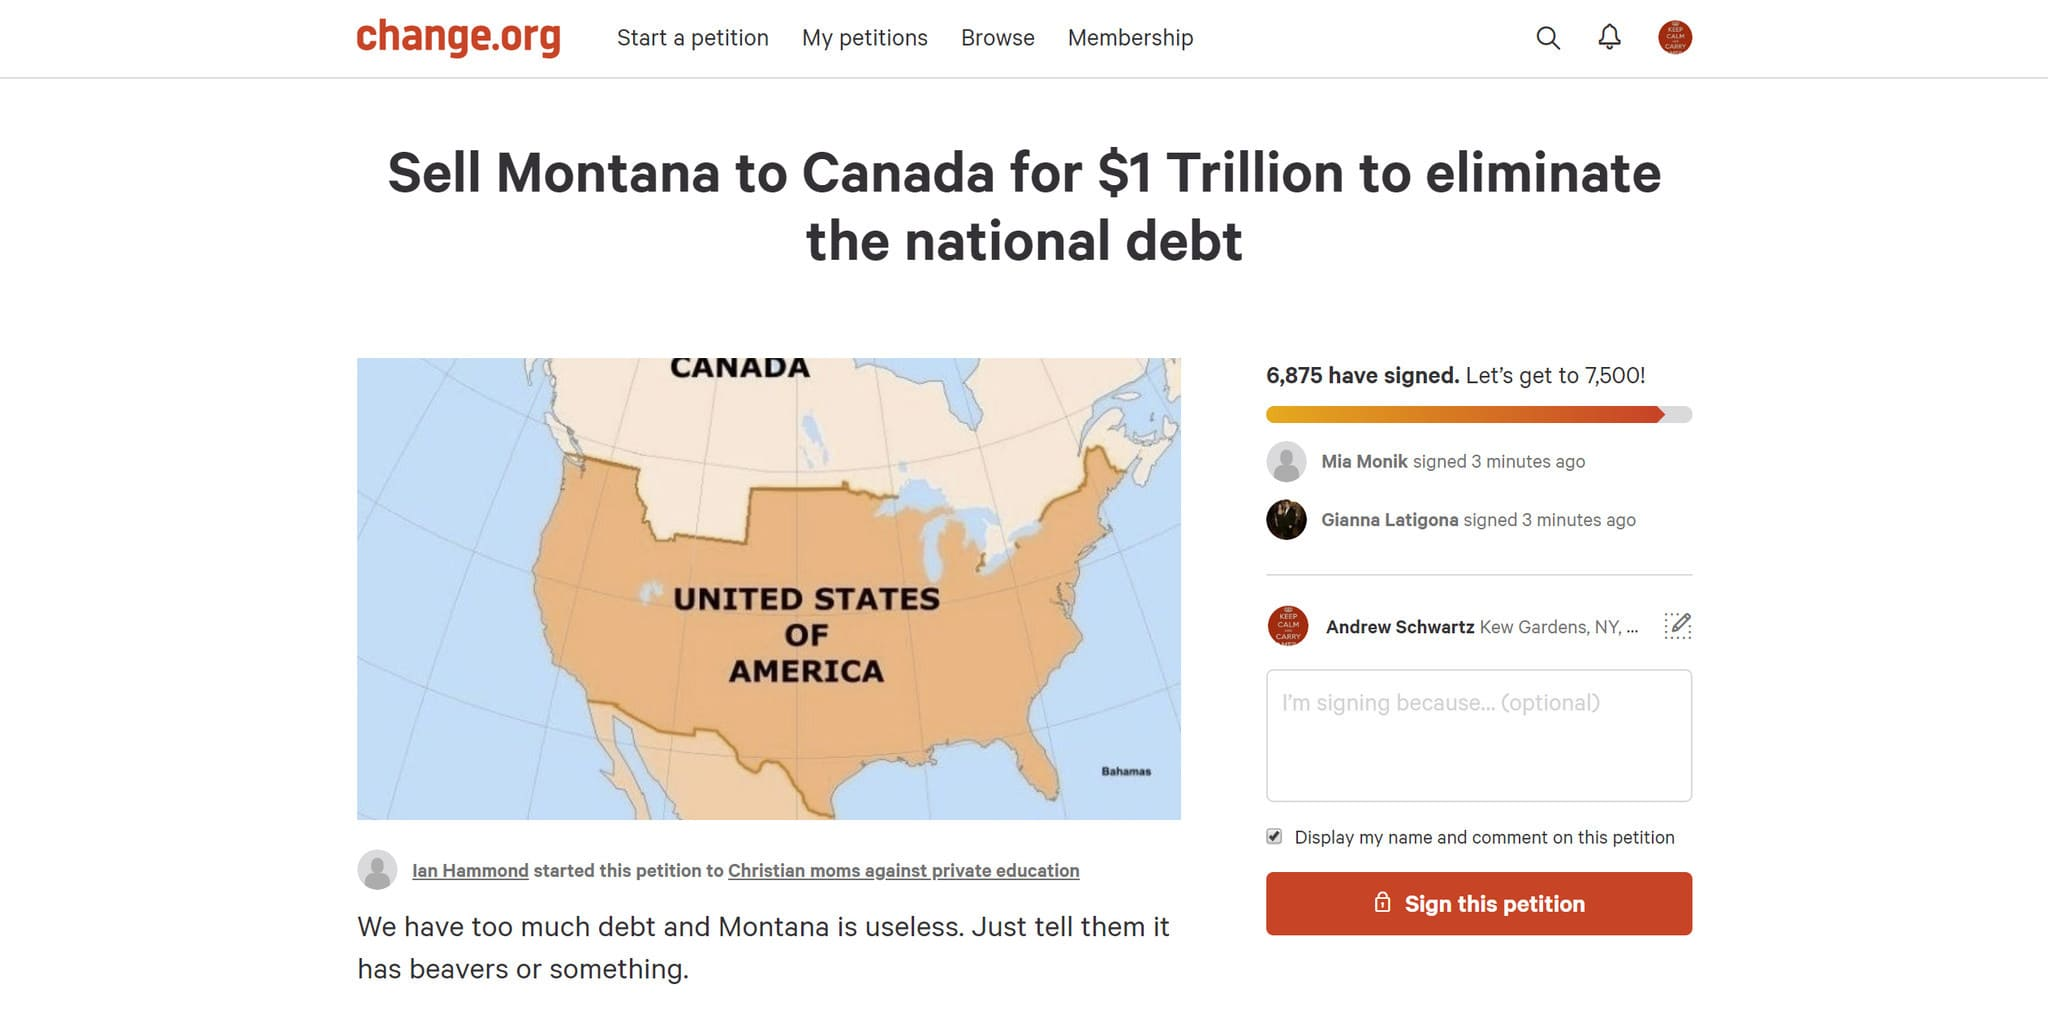 Public debt increased, thousands of Americans wanted to sell one state to Canada - 1